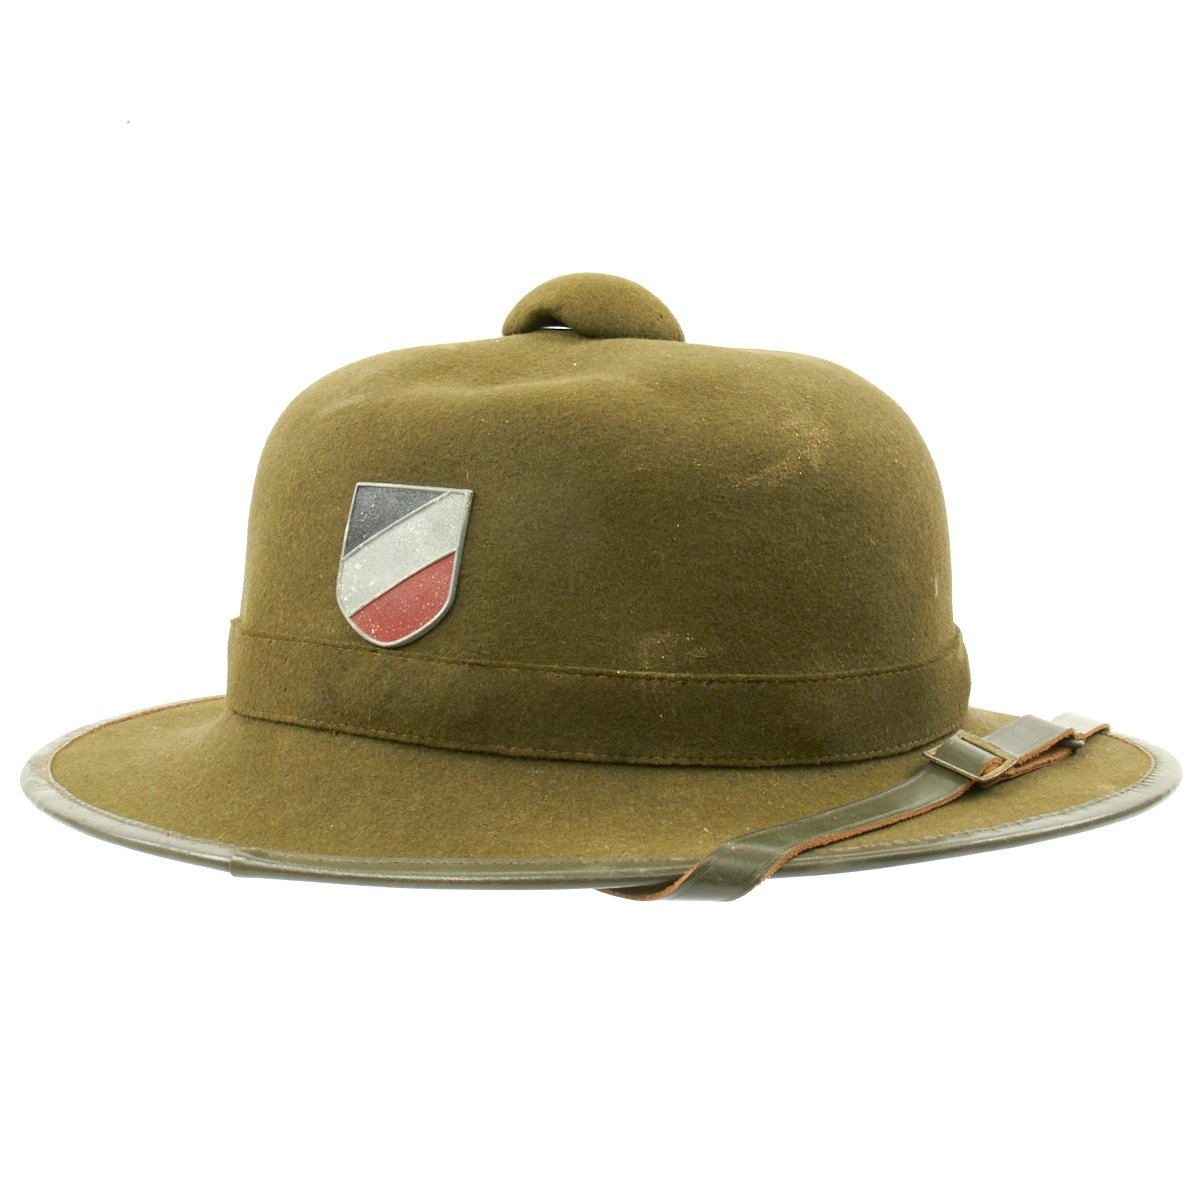 5bee19223691f Tap to expand · Next · Original German WWII Second Model DAK Afrikakorps  Sun Helmet by Mayser with ...